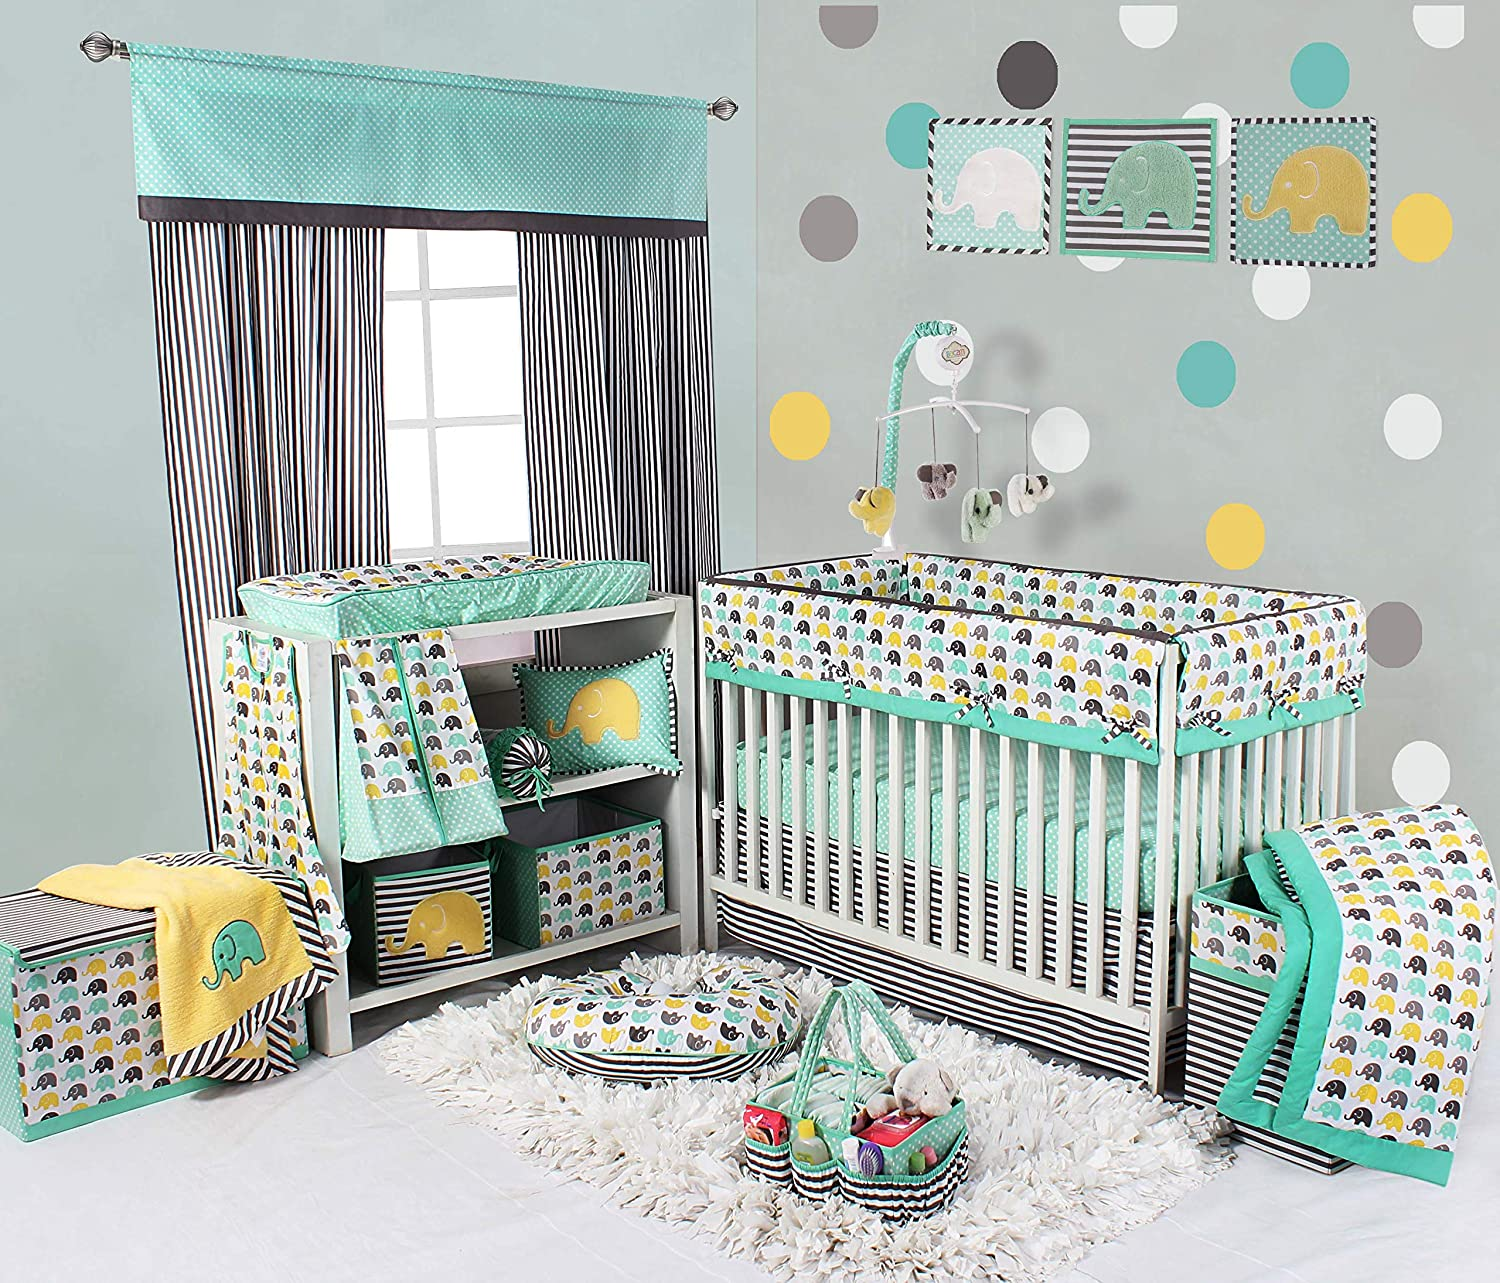 Bacati Elephants Unisex 10 Piece Nursery-in-A-Bag Crib Bedding Set with Long Rail Guard, 100 Percent Cotton Percale for US Standard Cribs, Mint/Yellow/Grey